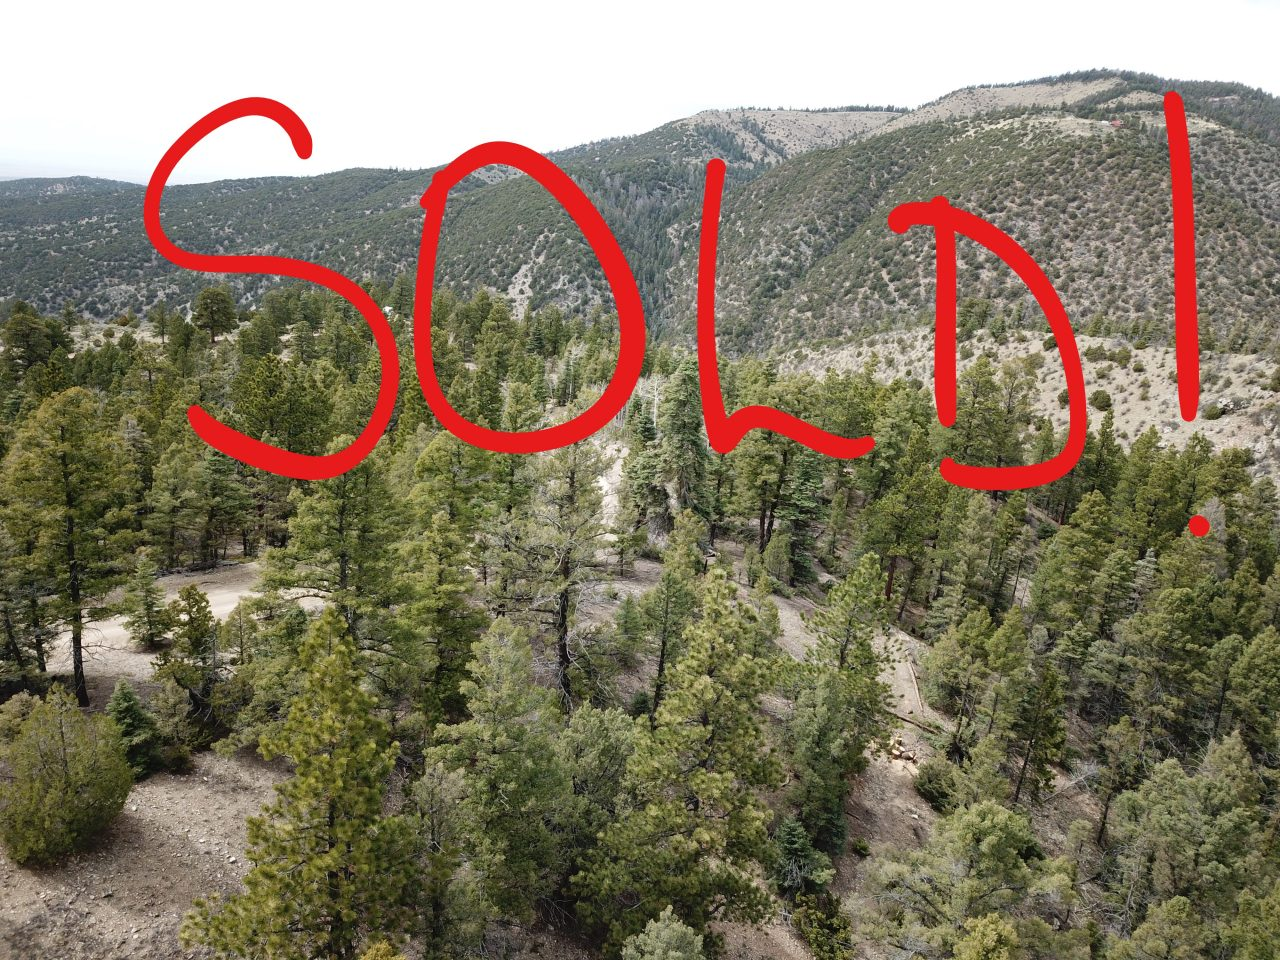 SOLD — 5.8 Ac CO Mountaintop Oasis